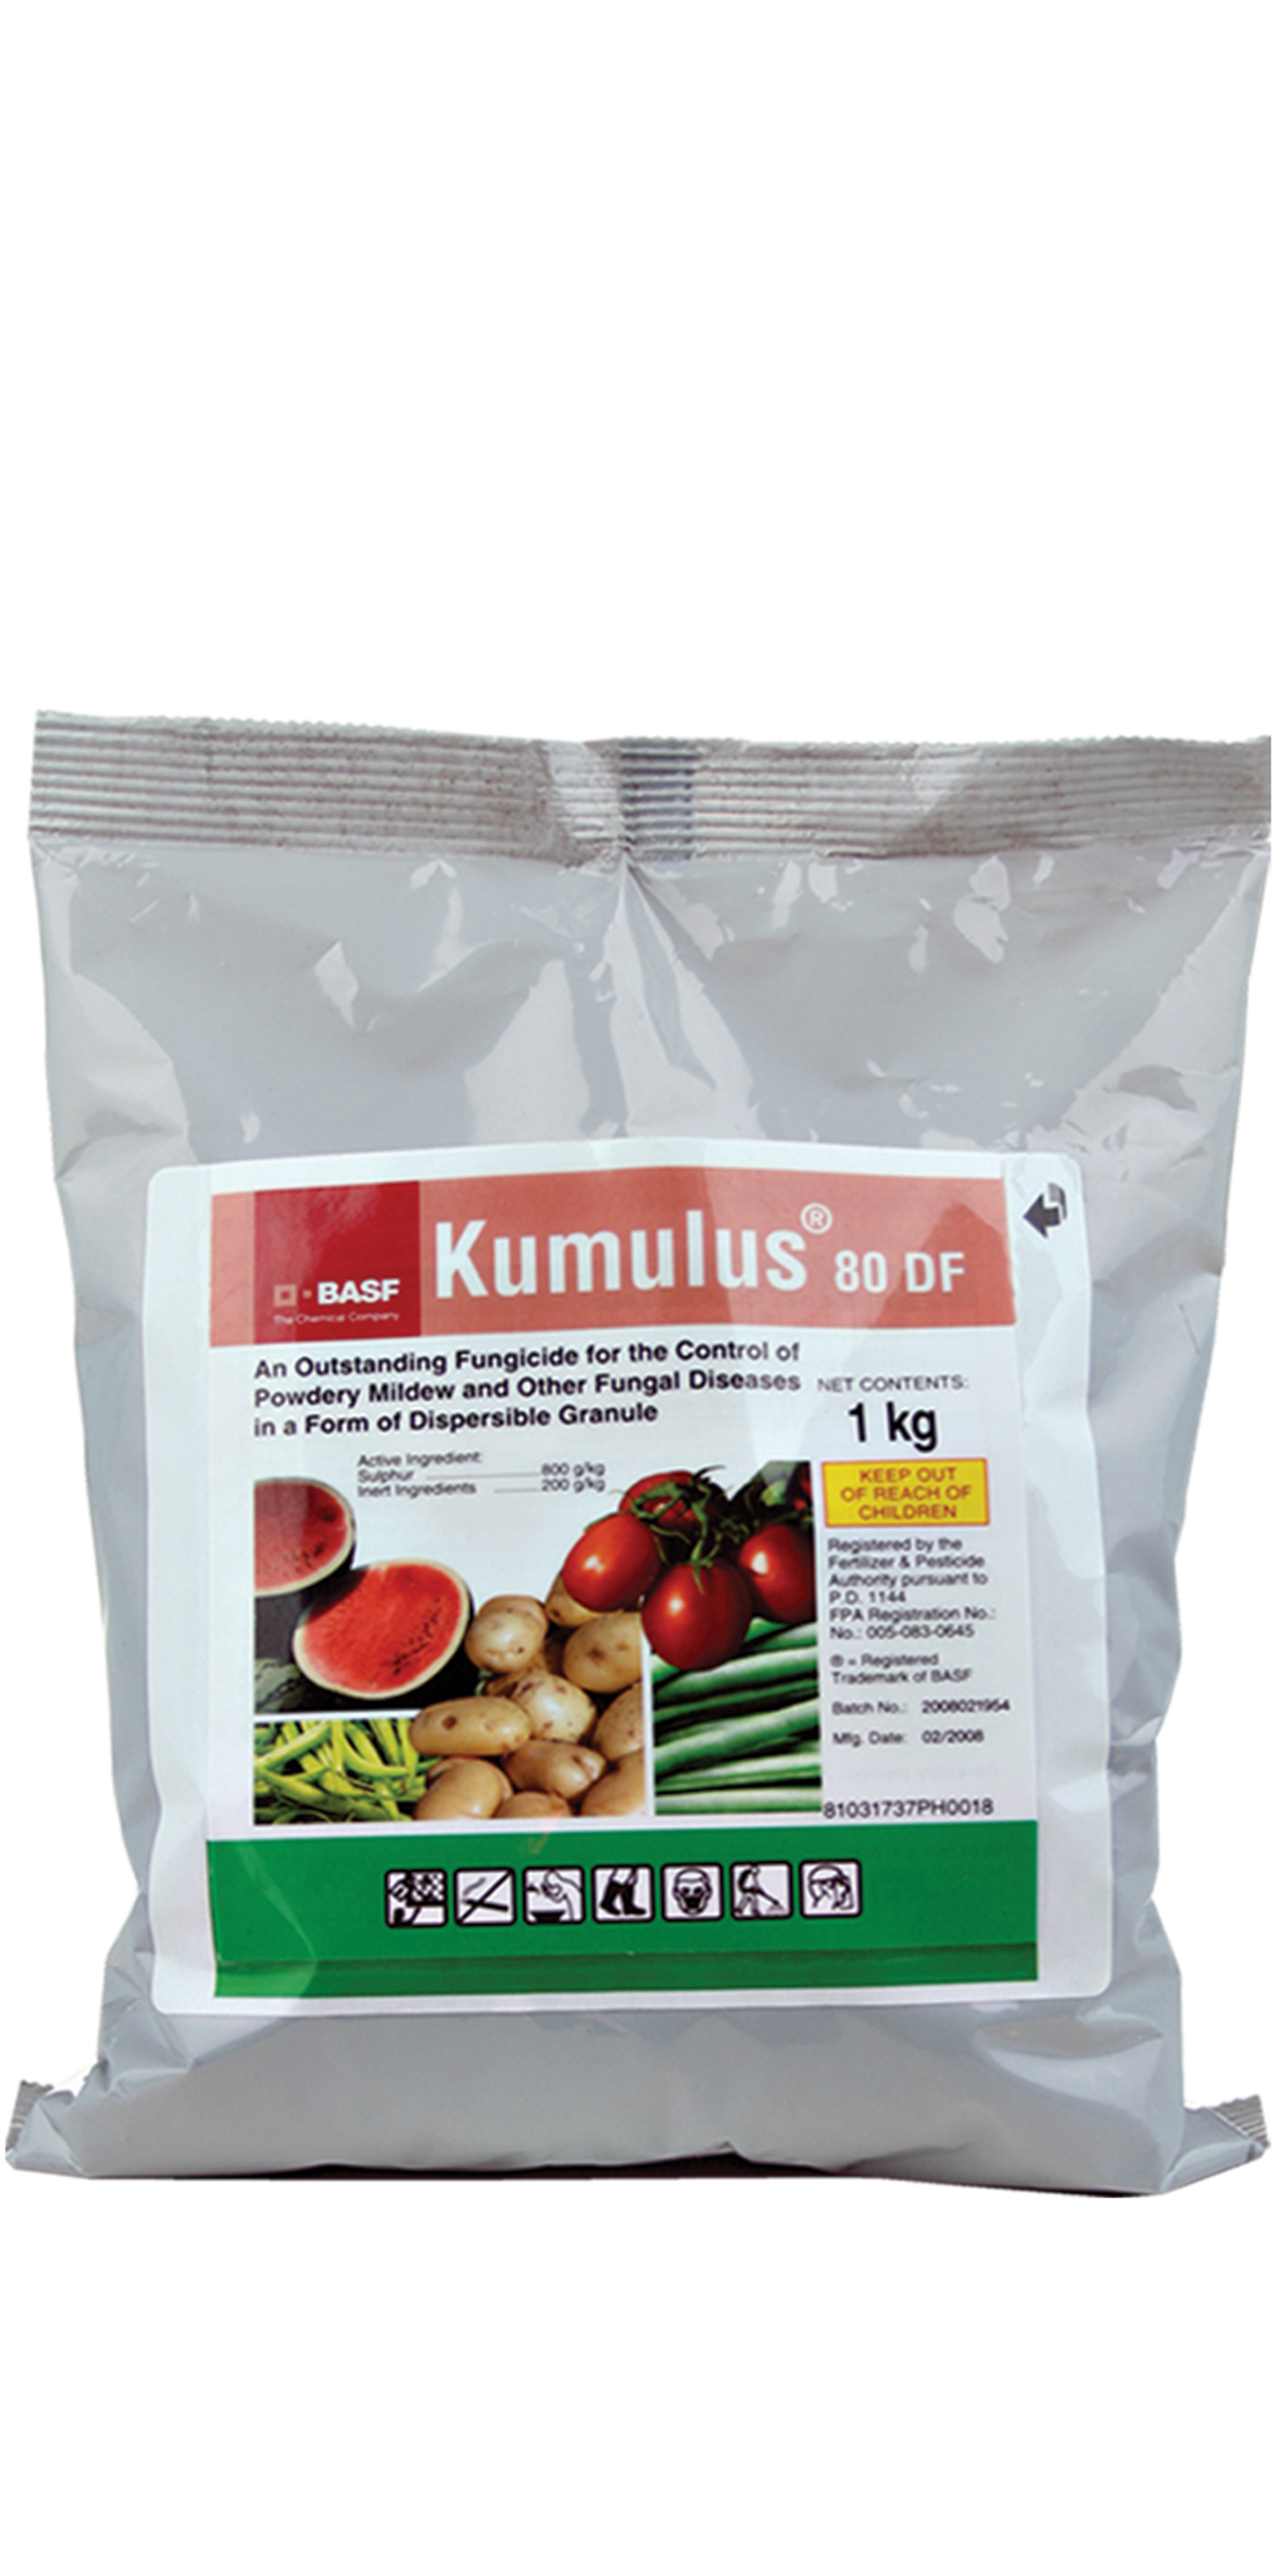 Kumulus® fungicide | BASF Crop Protection Philippines